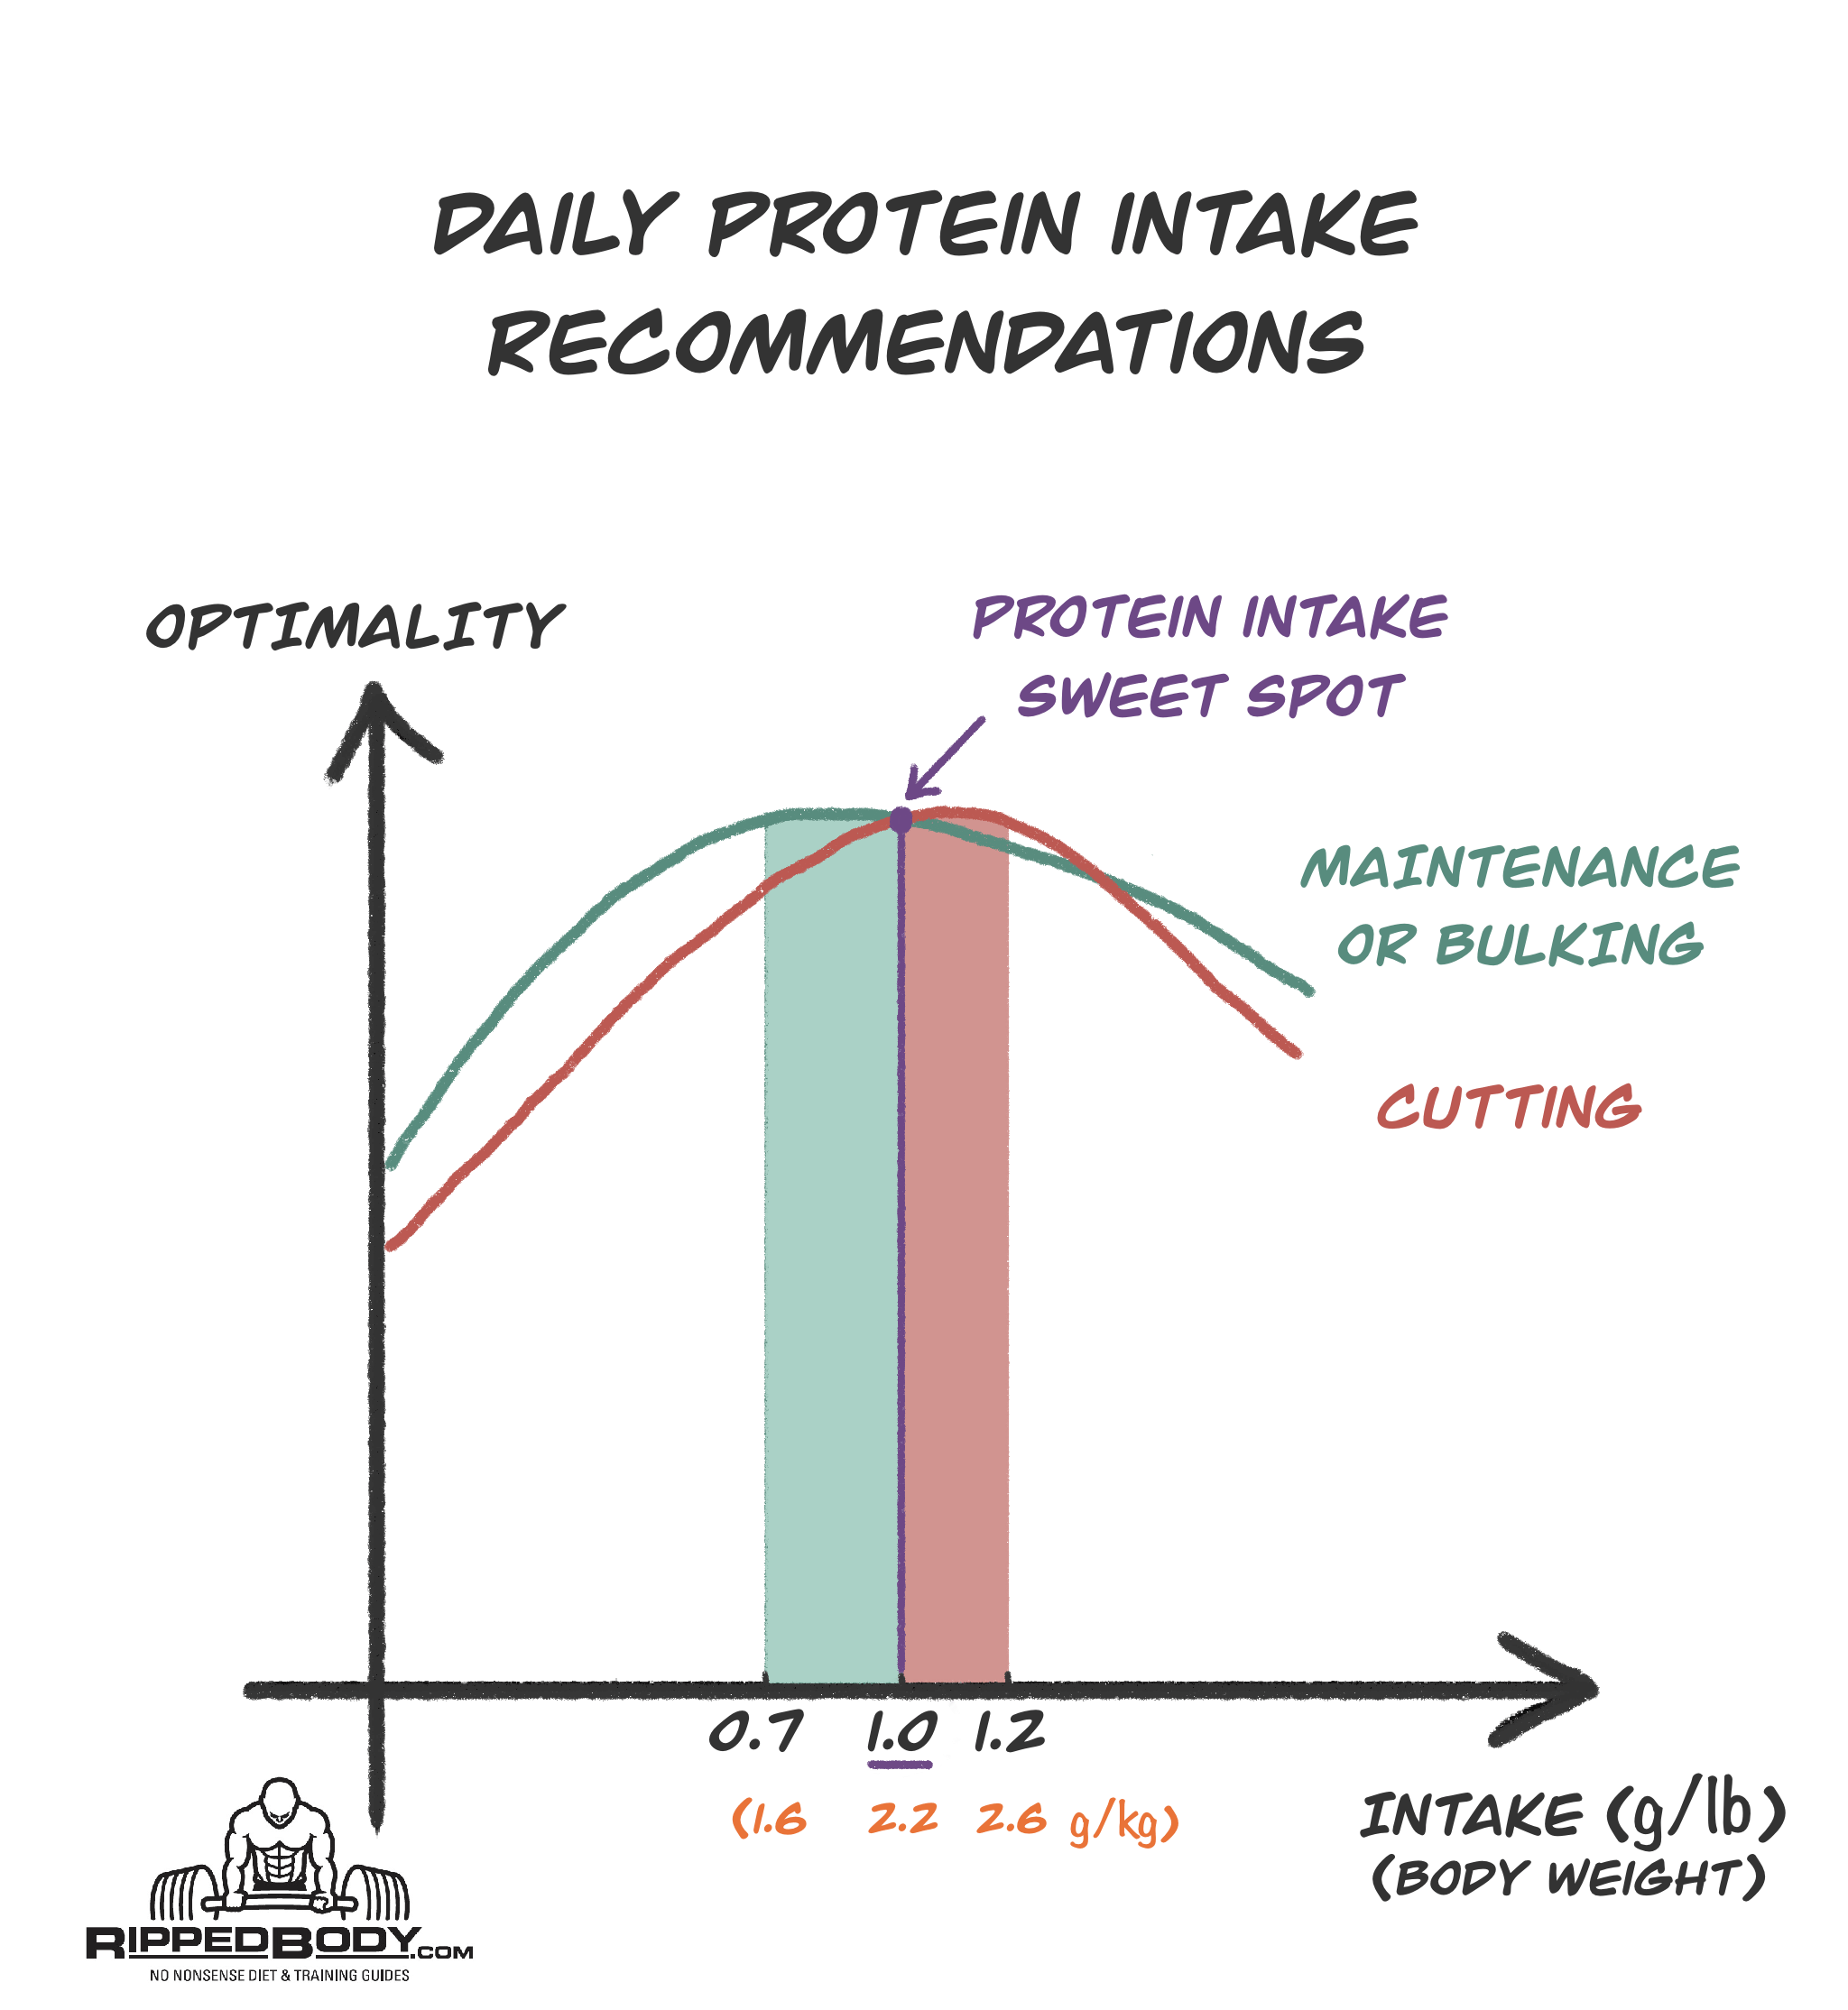 Daily Protein Intake Recommendations